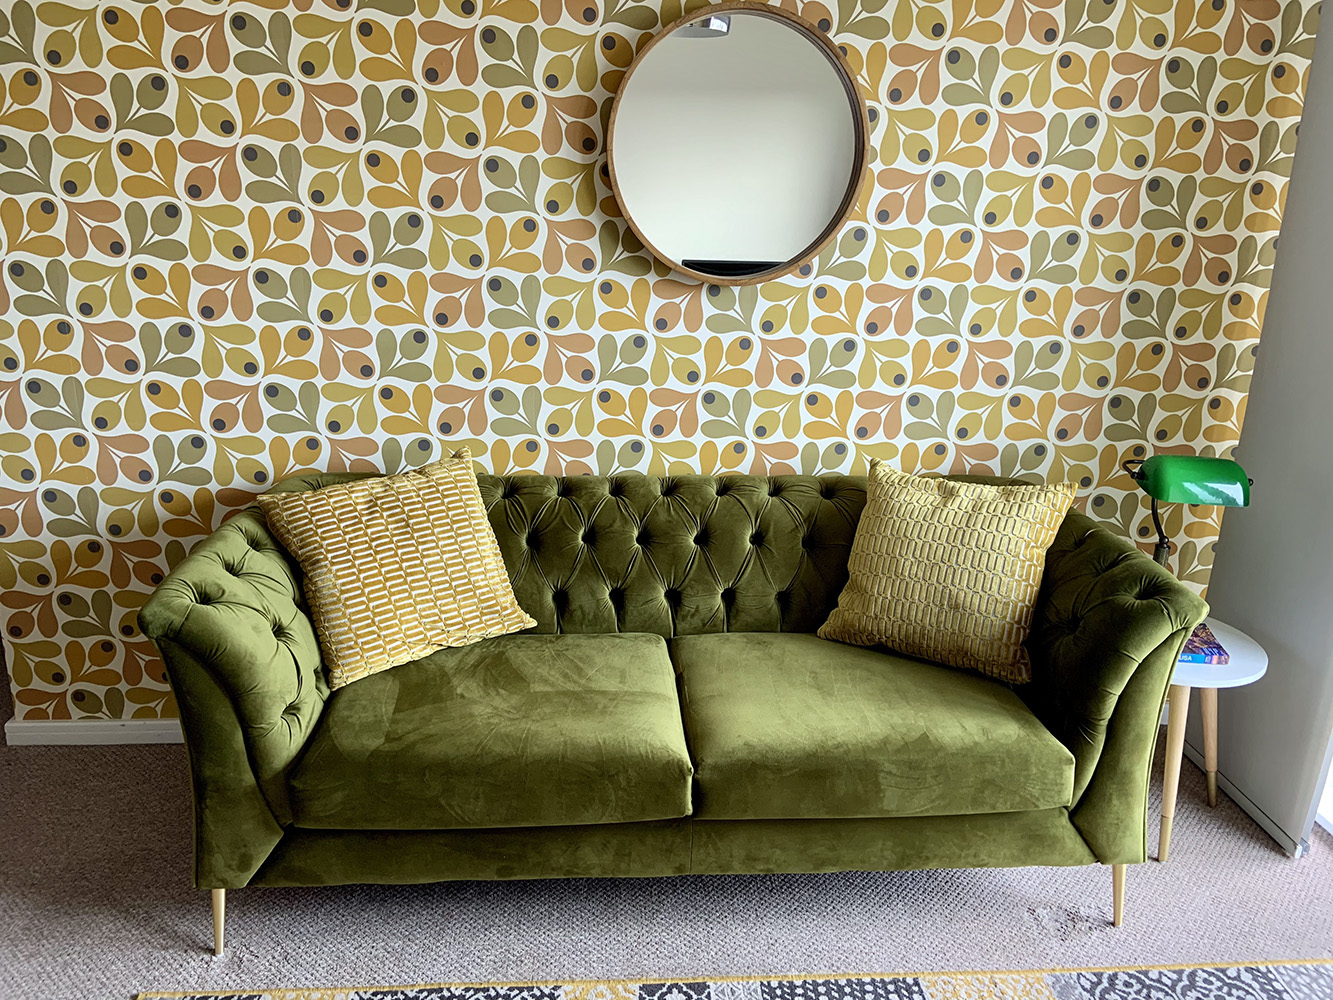 Green Chesterfield Modern sofa from Colin